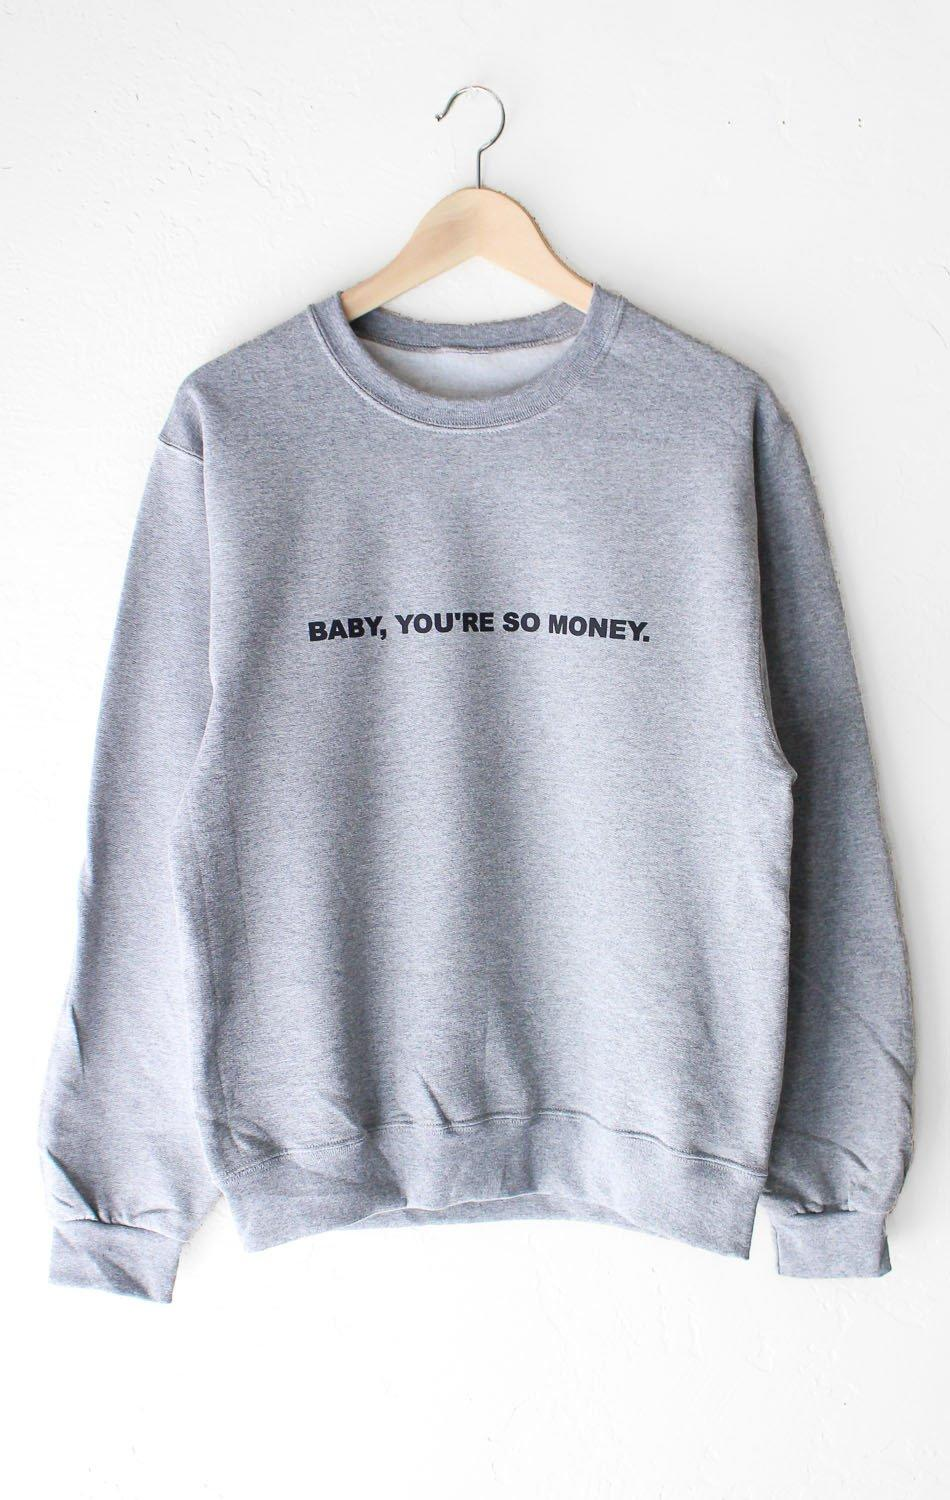 ed2be5d273e Baby You re So Money Oversized Sweatshirt from NYCT Clothing